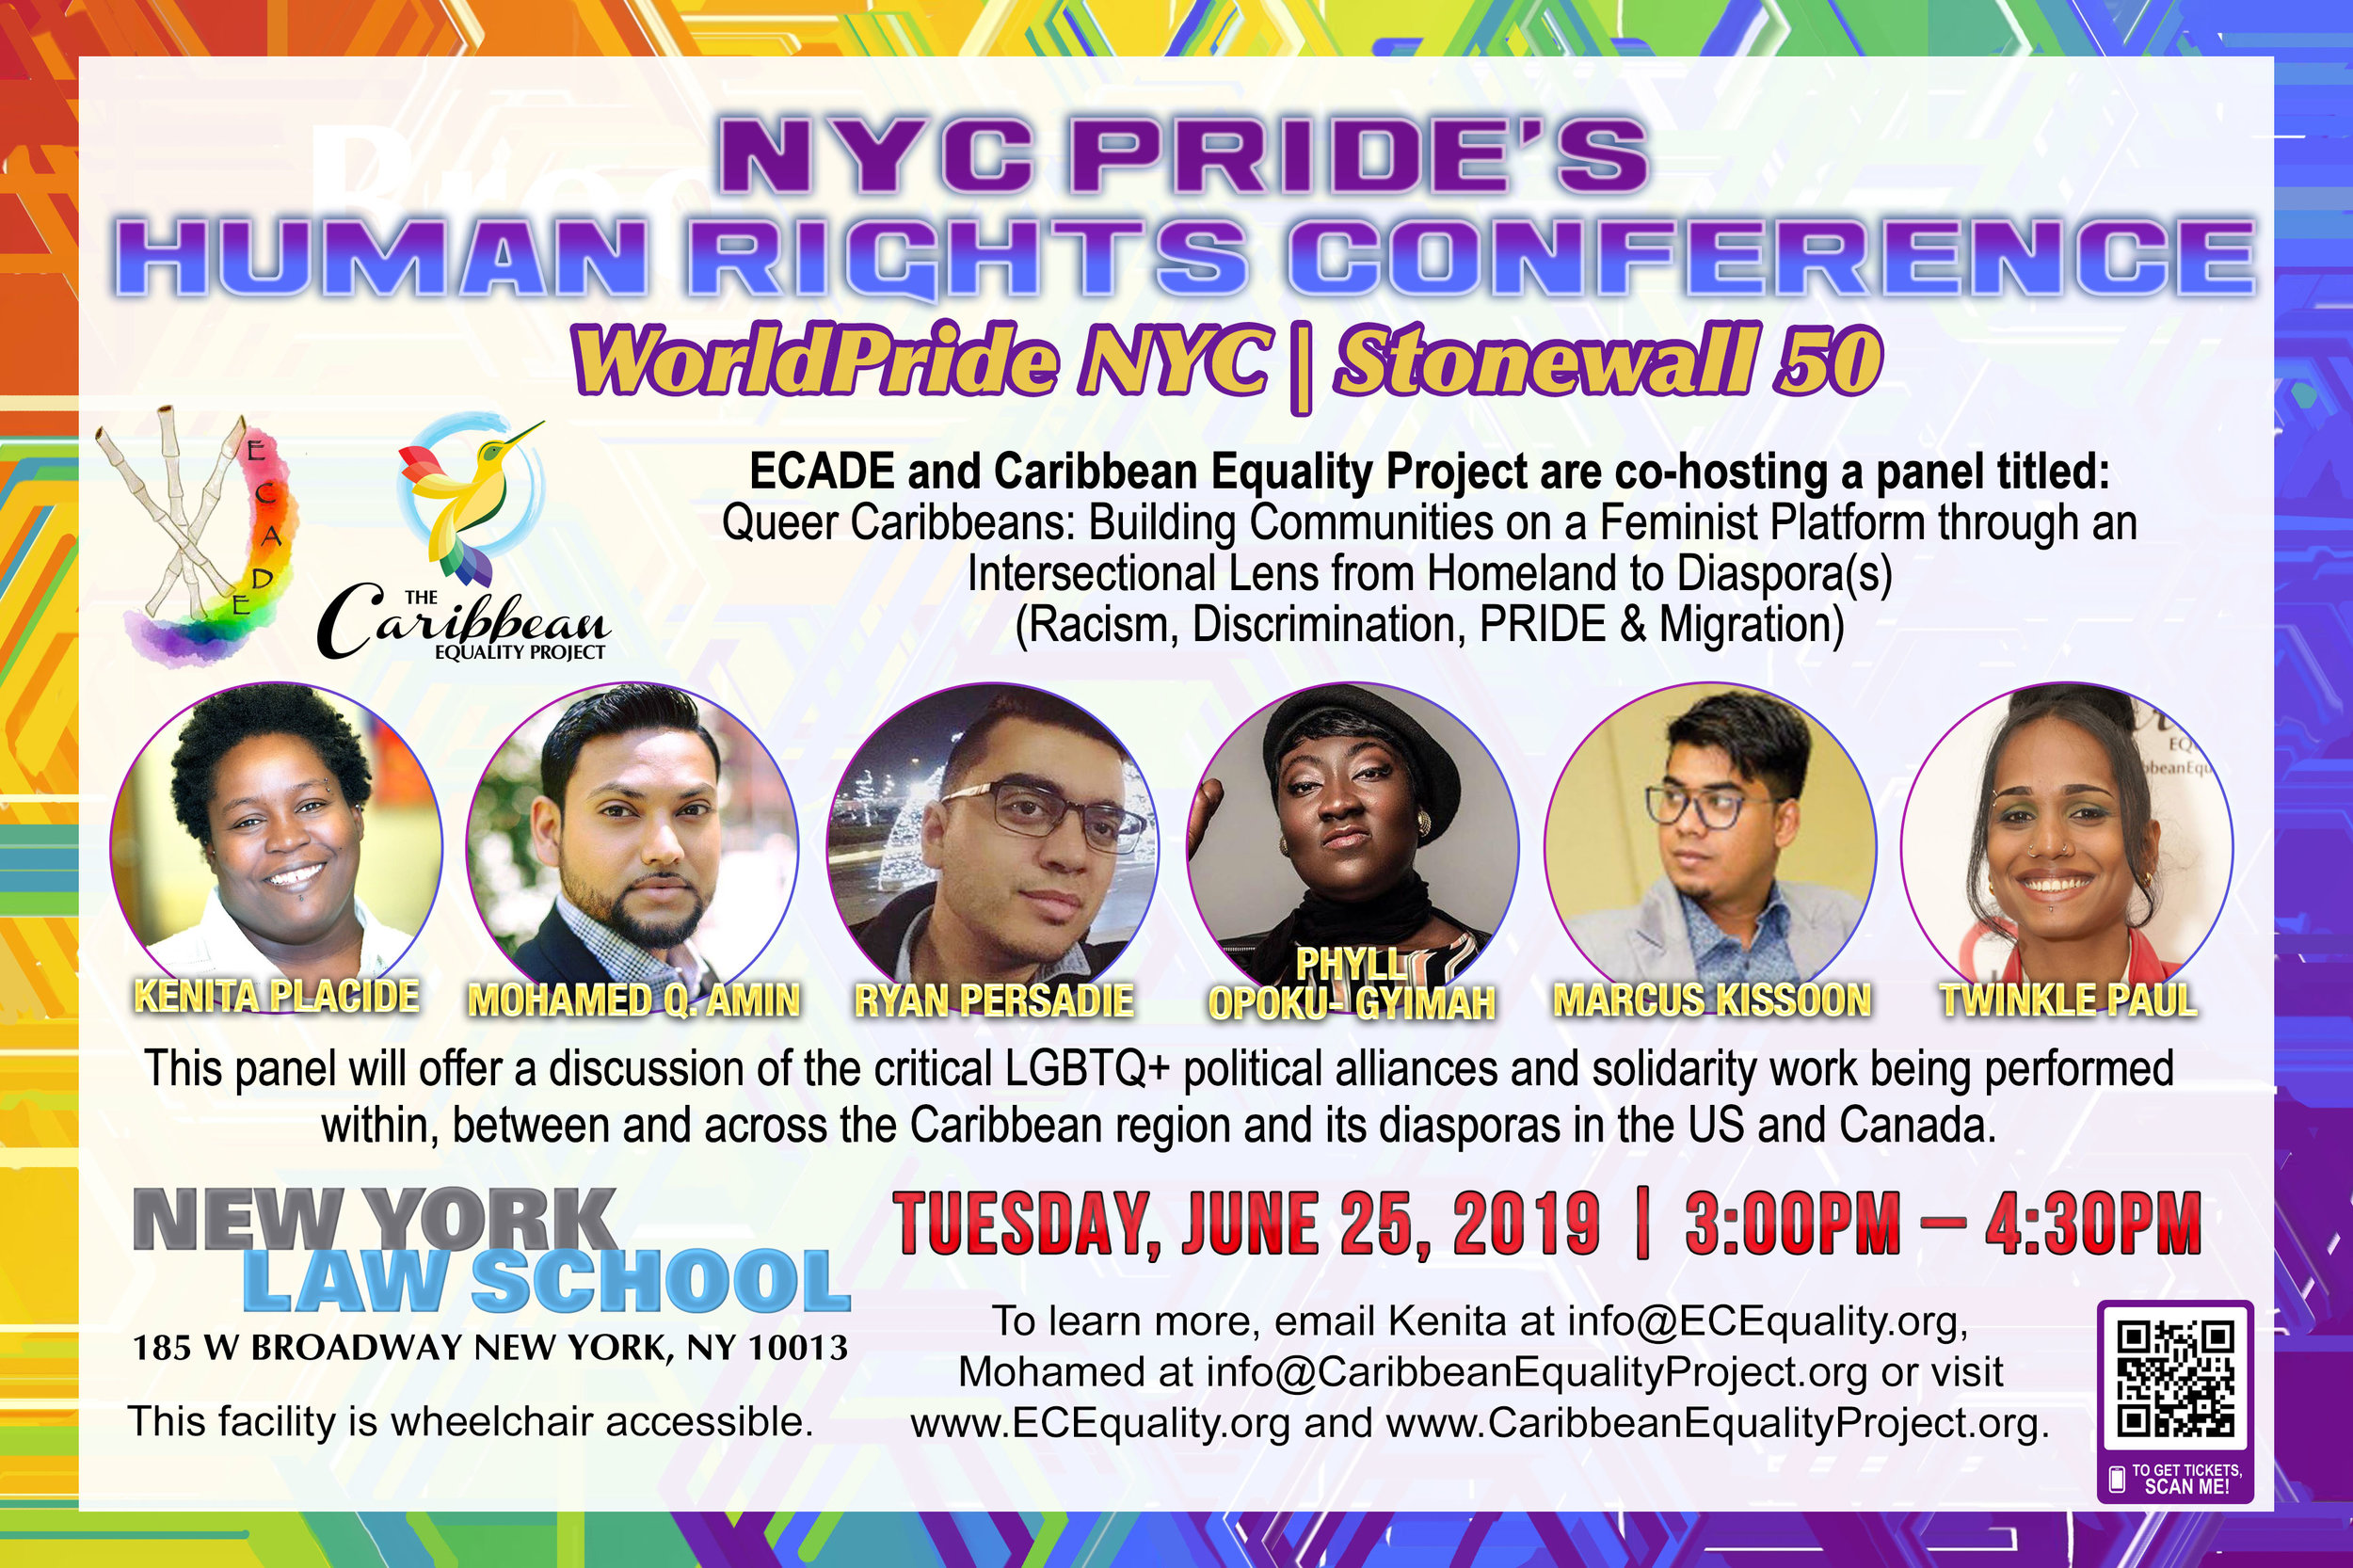 NYC Pride's Human Rights Conference